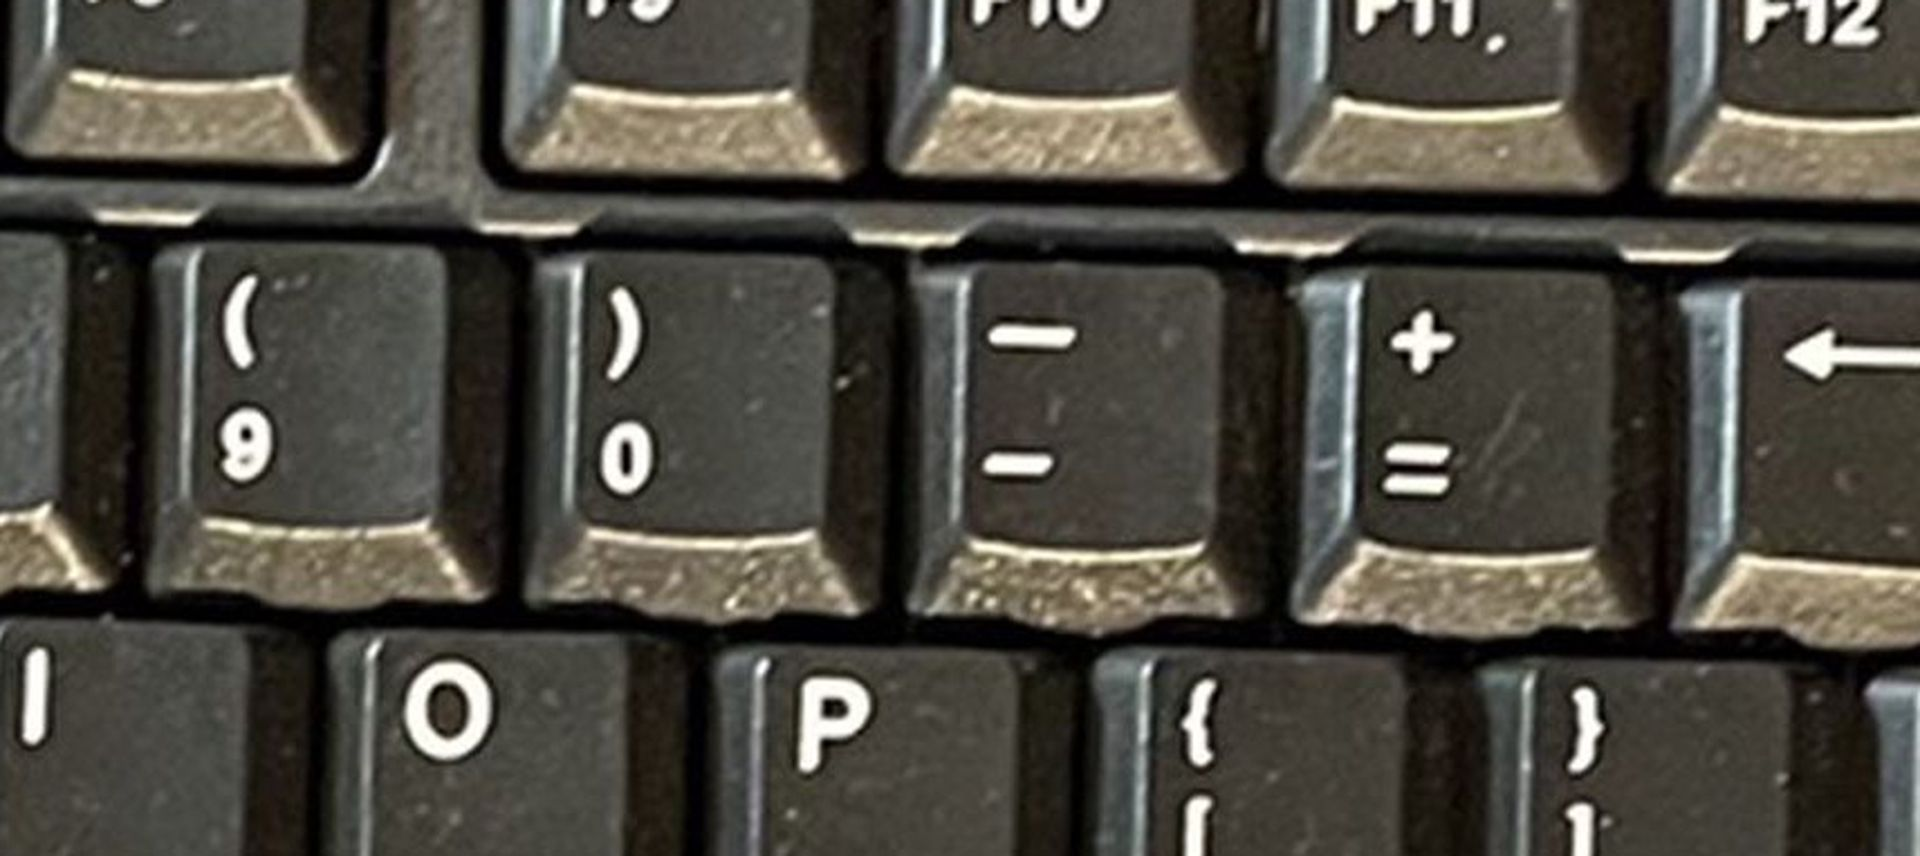 Computer Keyboard And Mouse - USB